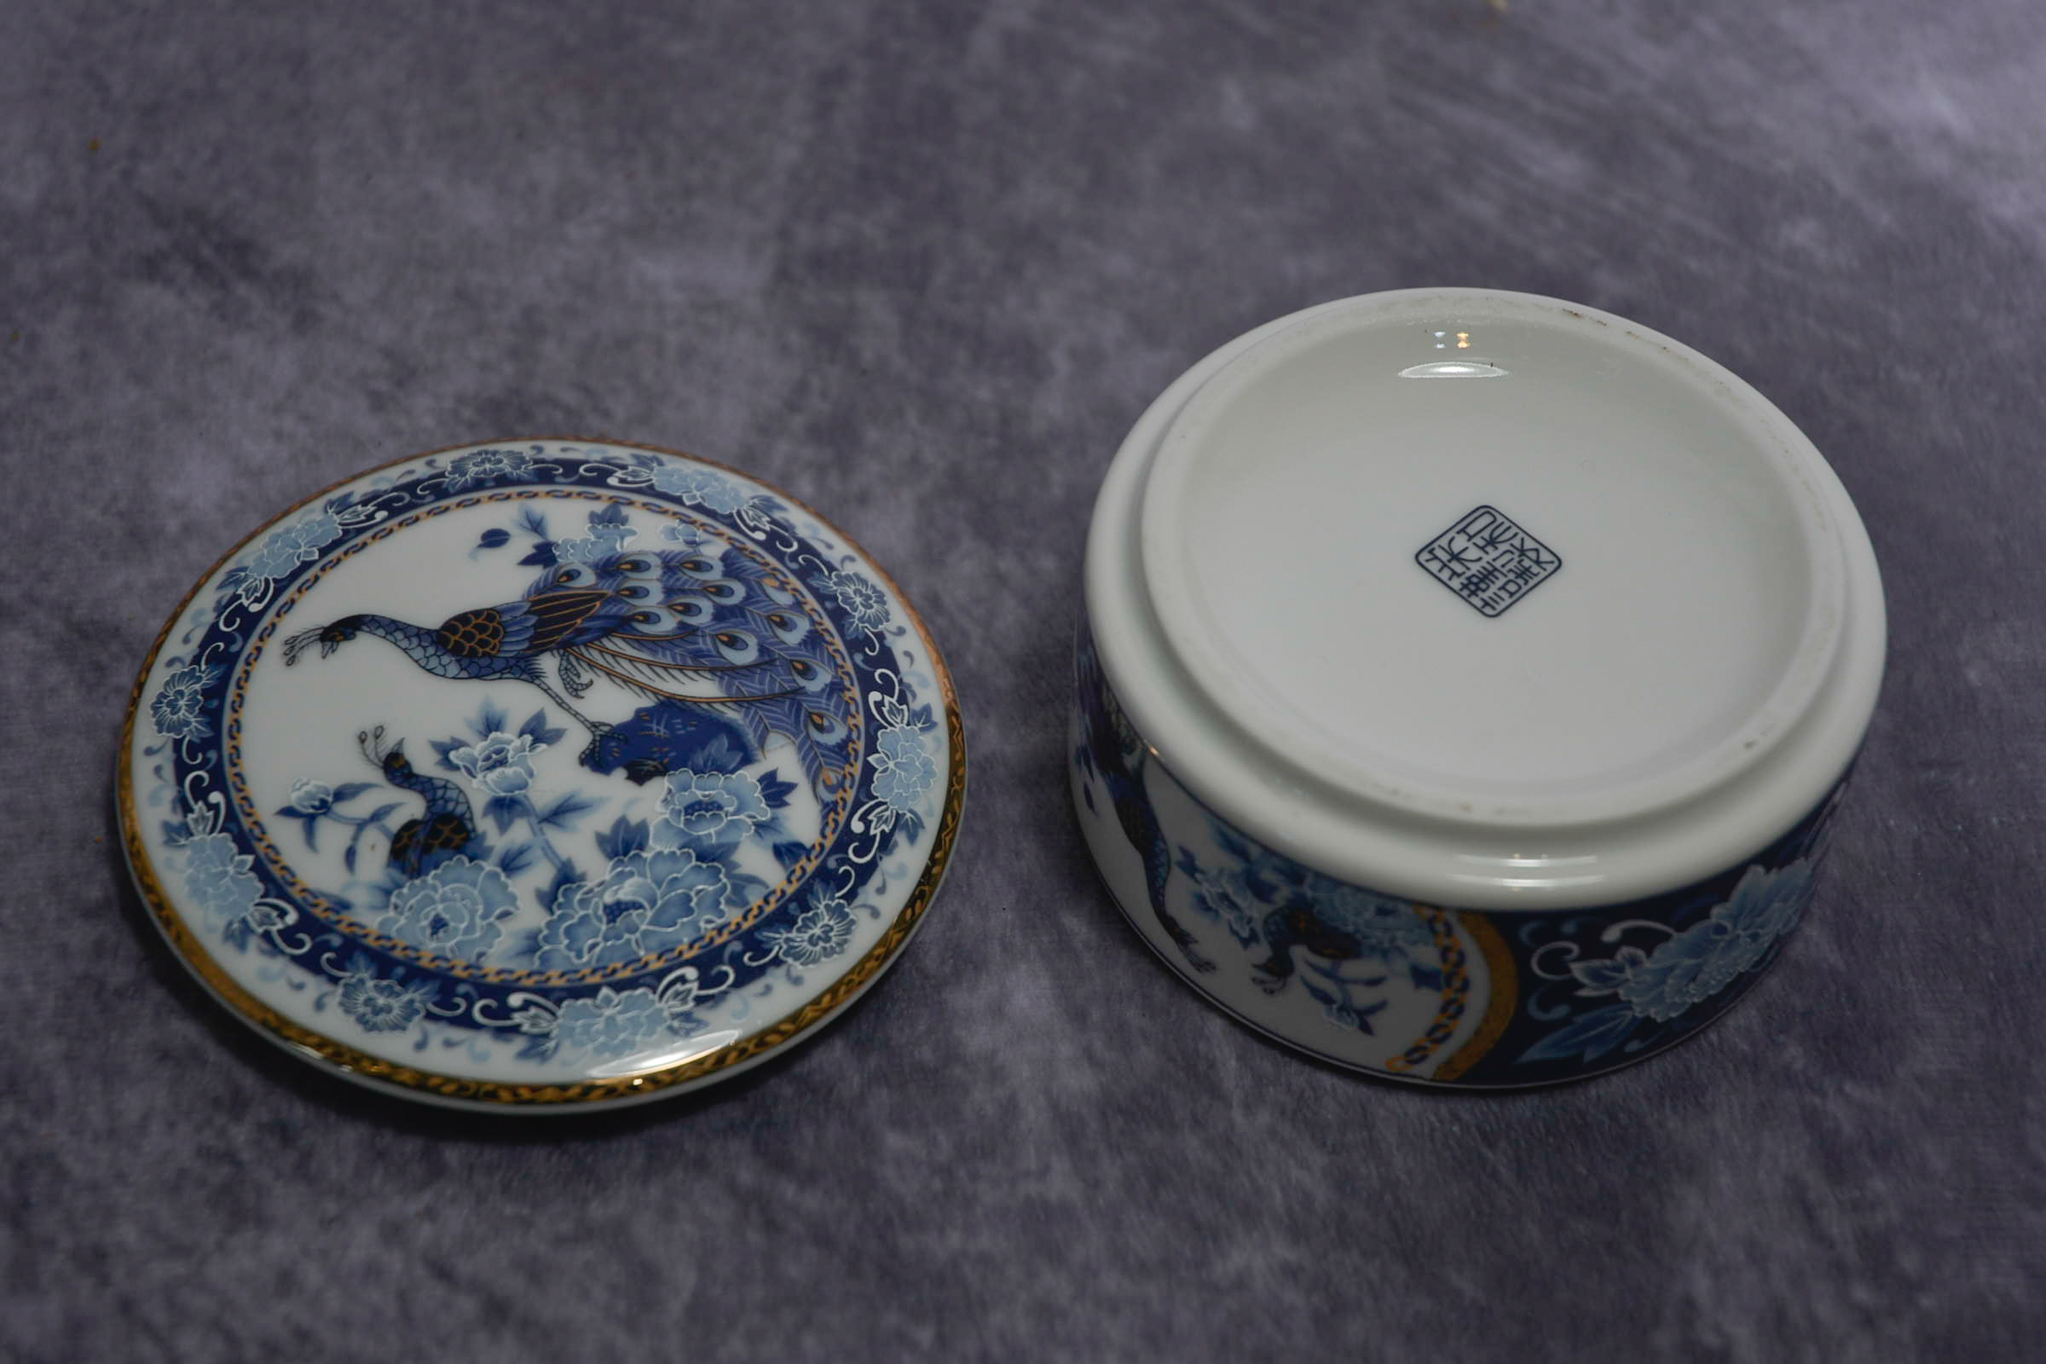 Lot 53 - Japanese trinket box